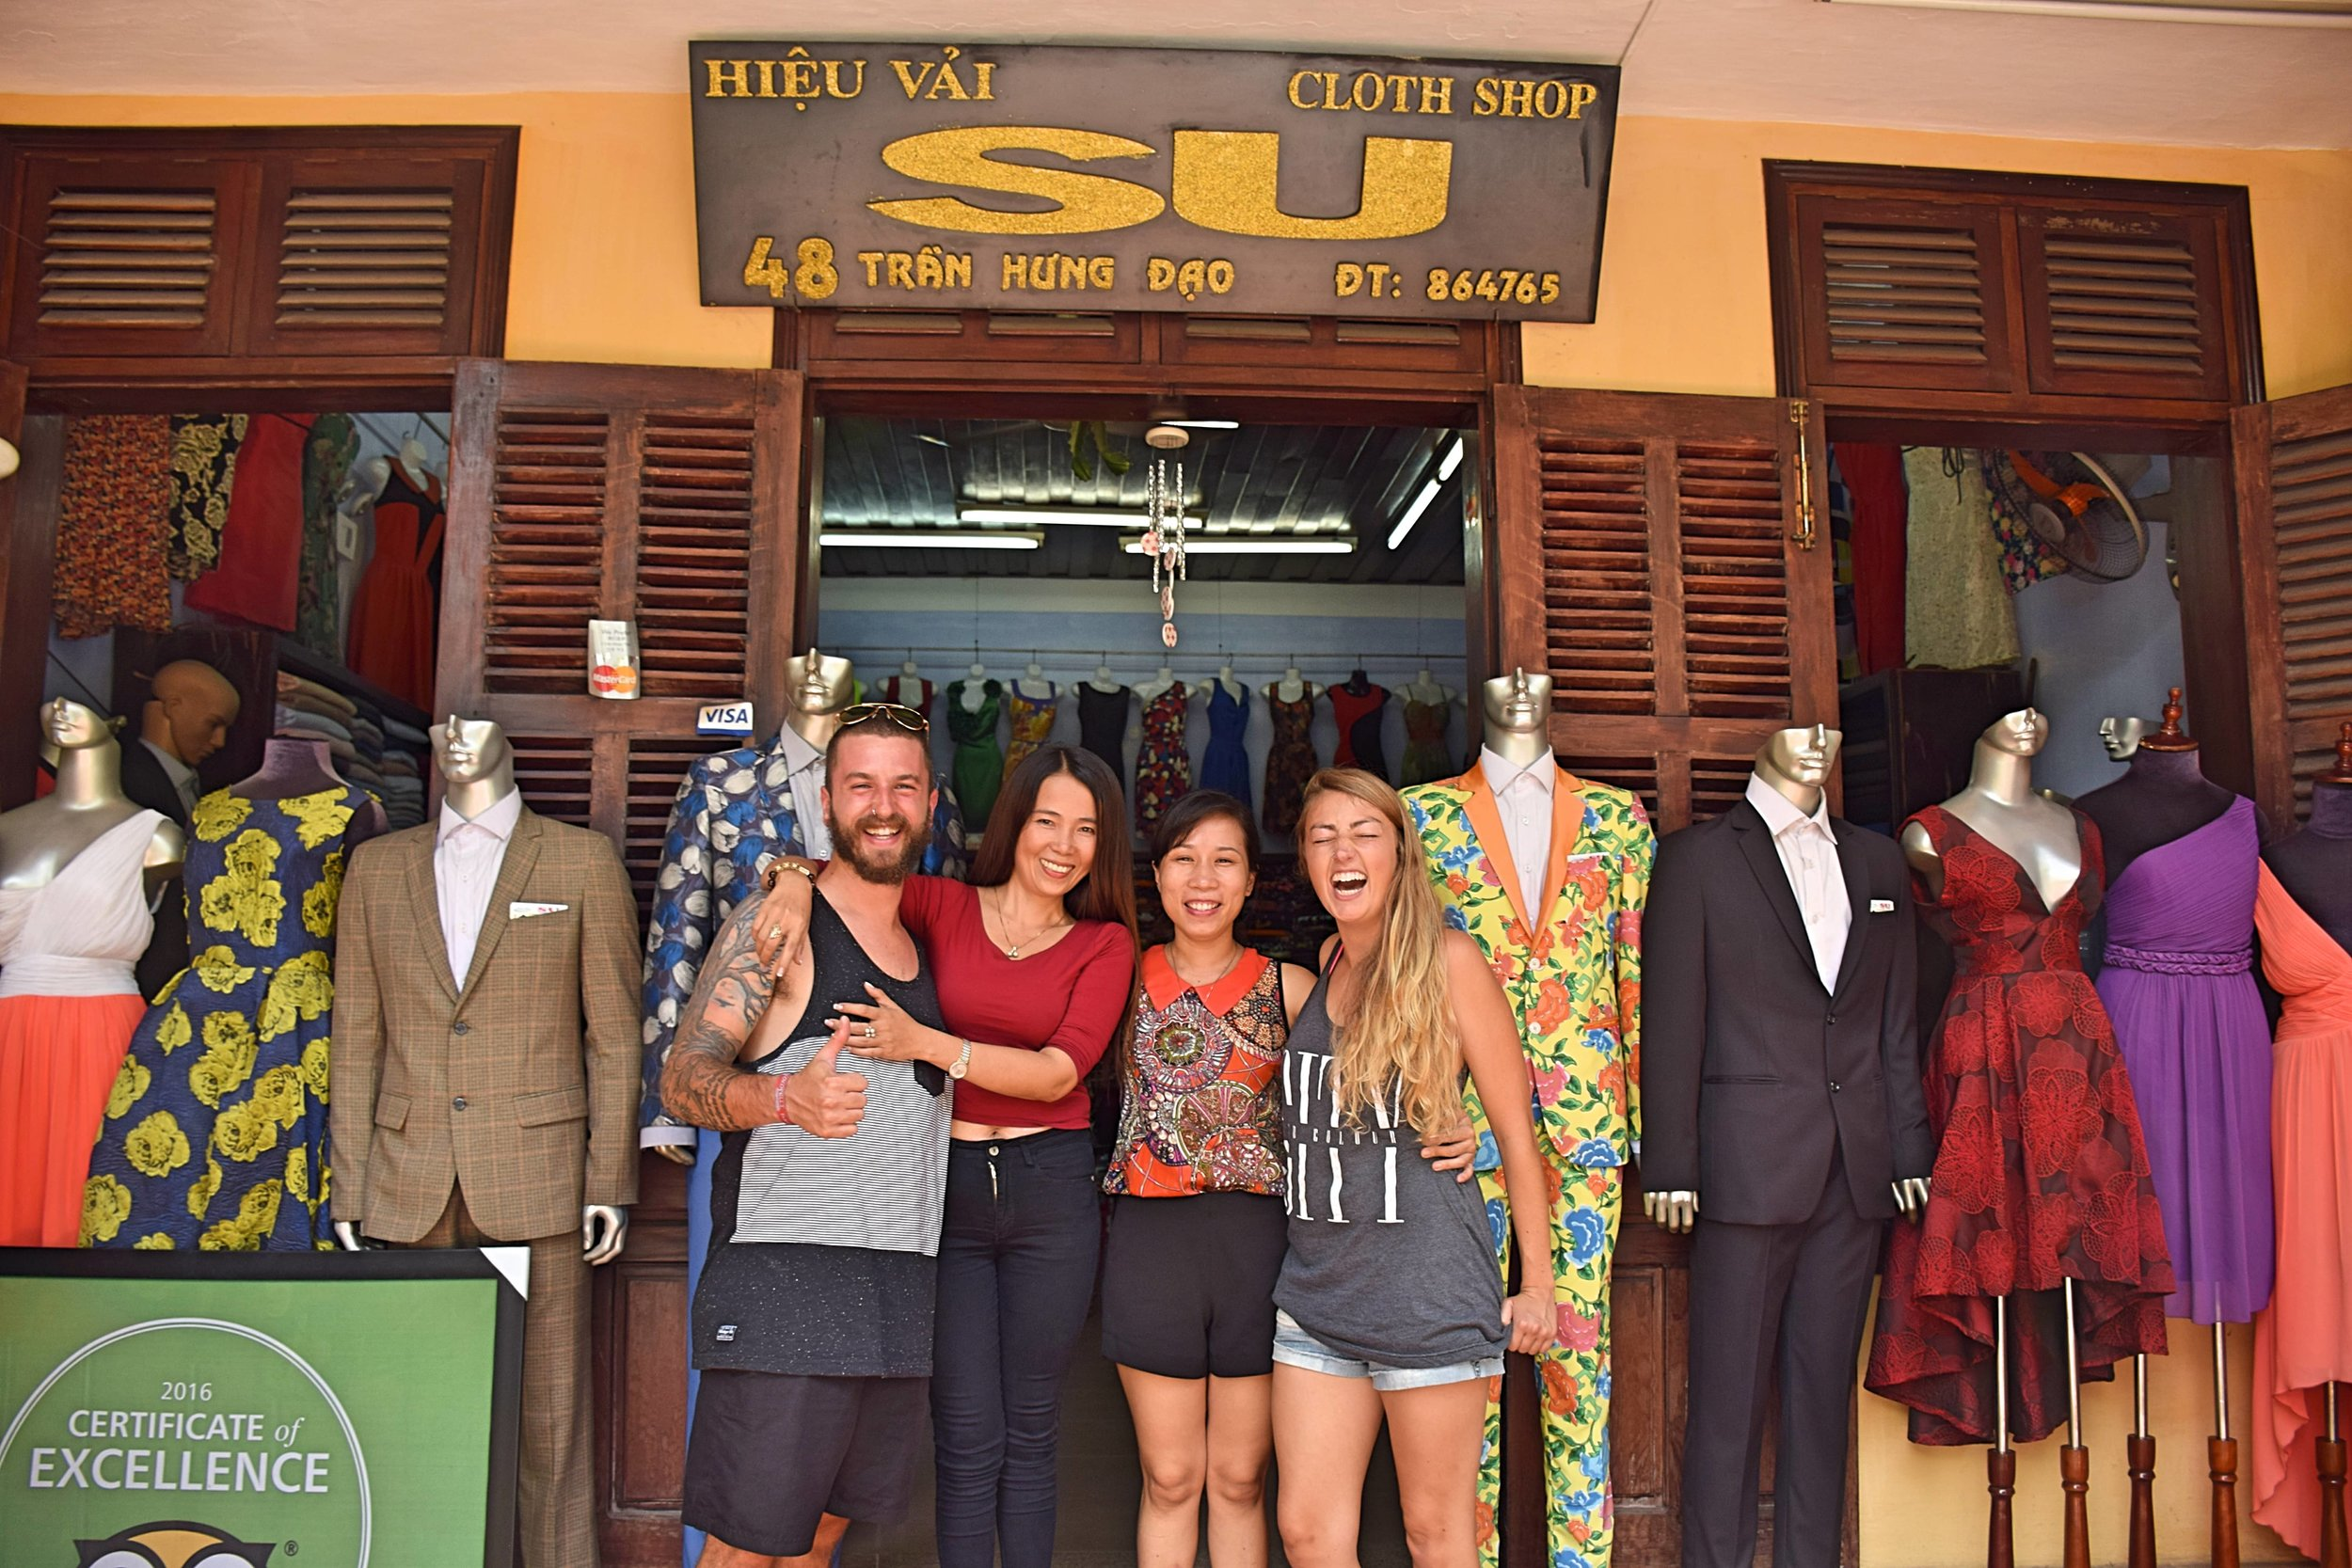 We had the suits made here: Cloth Shop Su